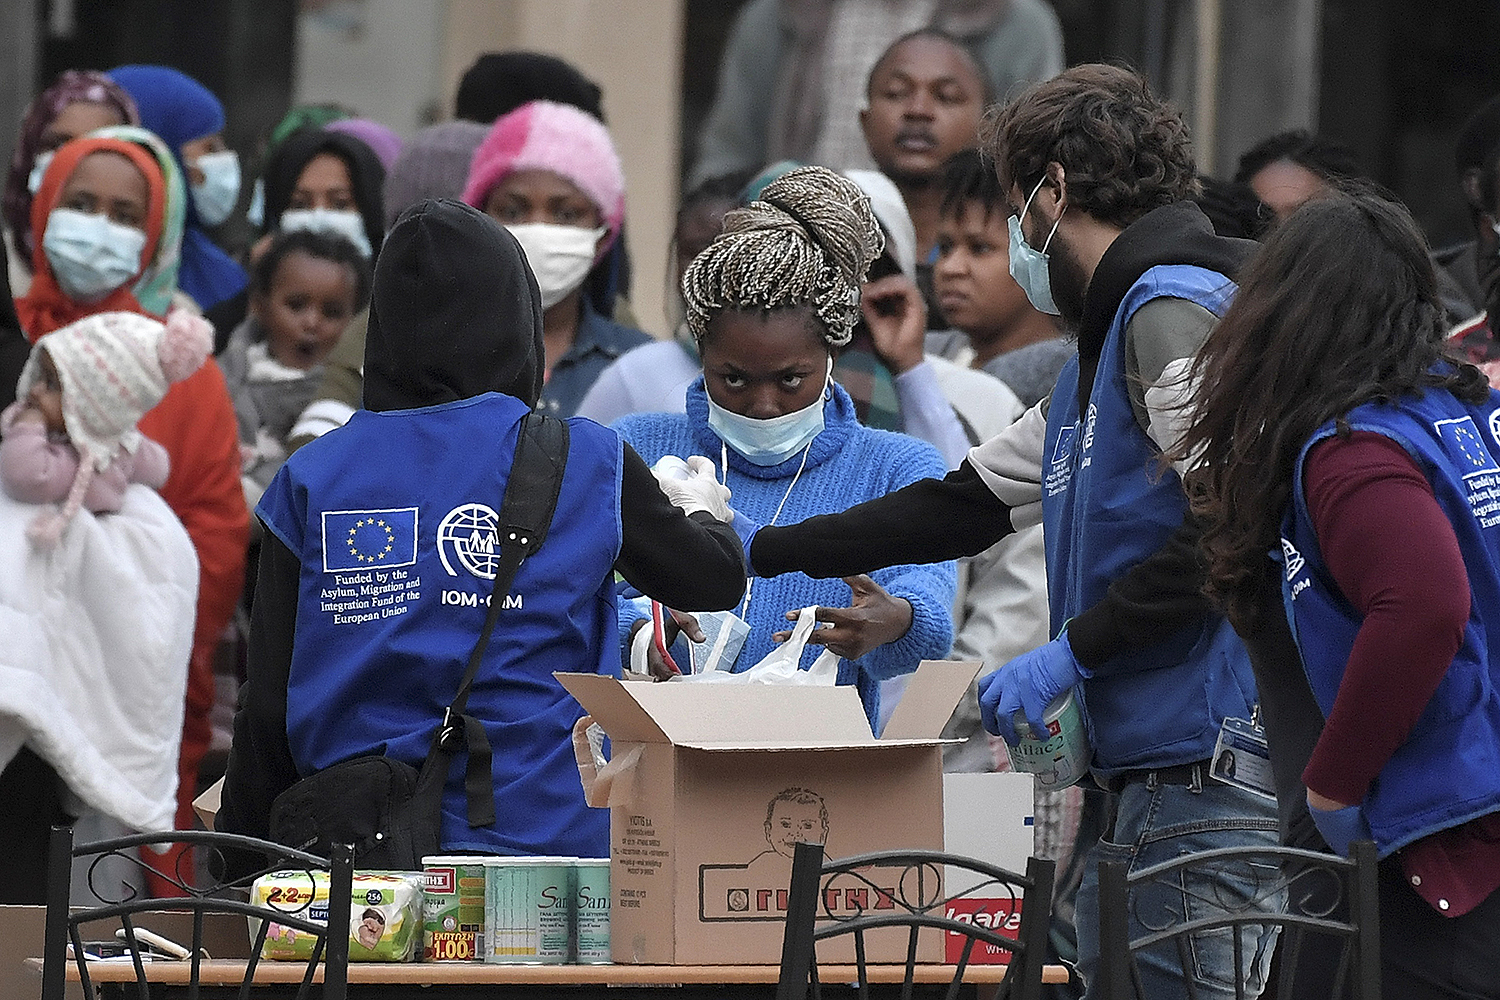 Migrants stand in line to get sanitizer and other items during a distribution by the International Organization for Migration near Kranidi, Greece, on April 21. LOUISA GOULIAMAKI/AFP via Getty Images